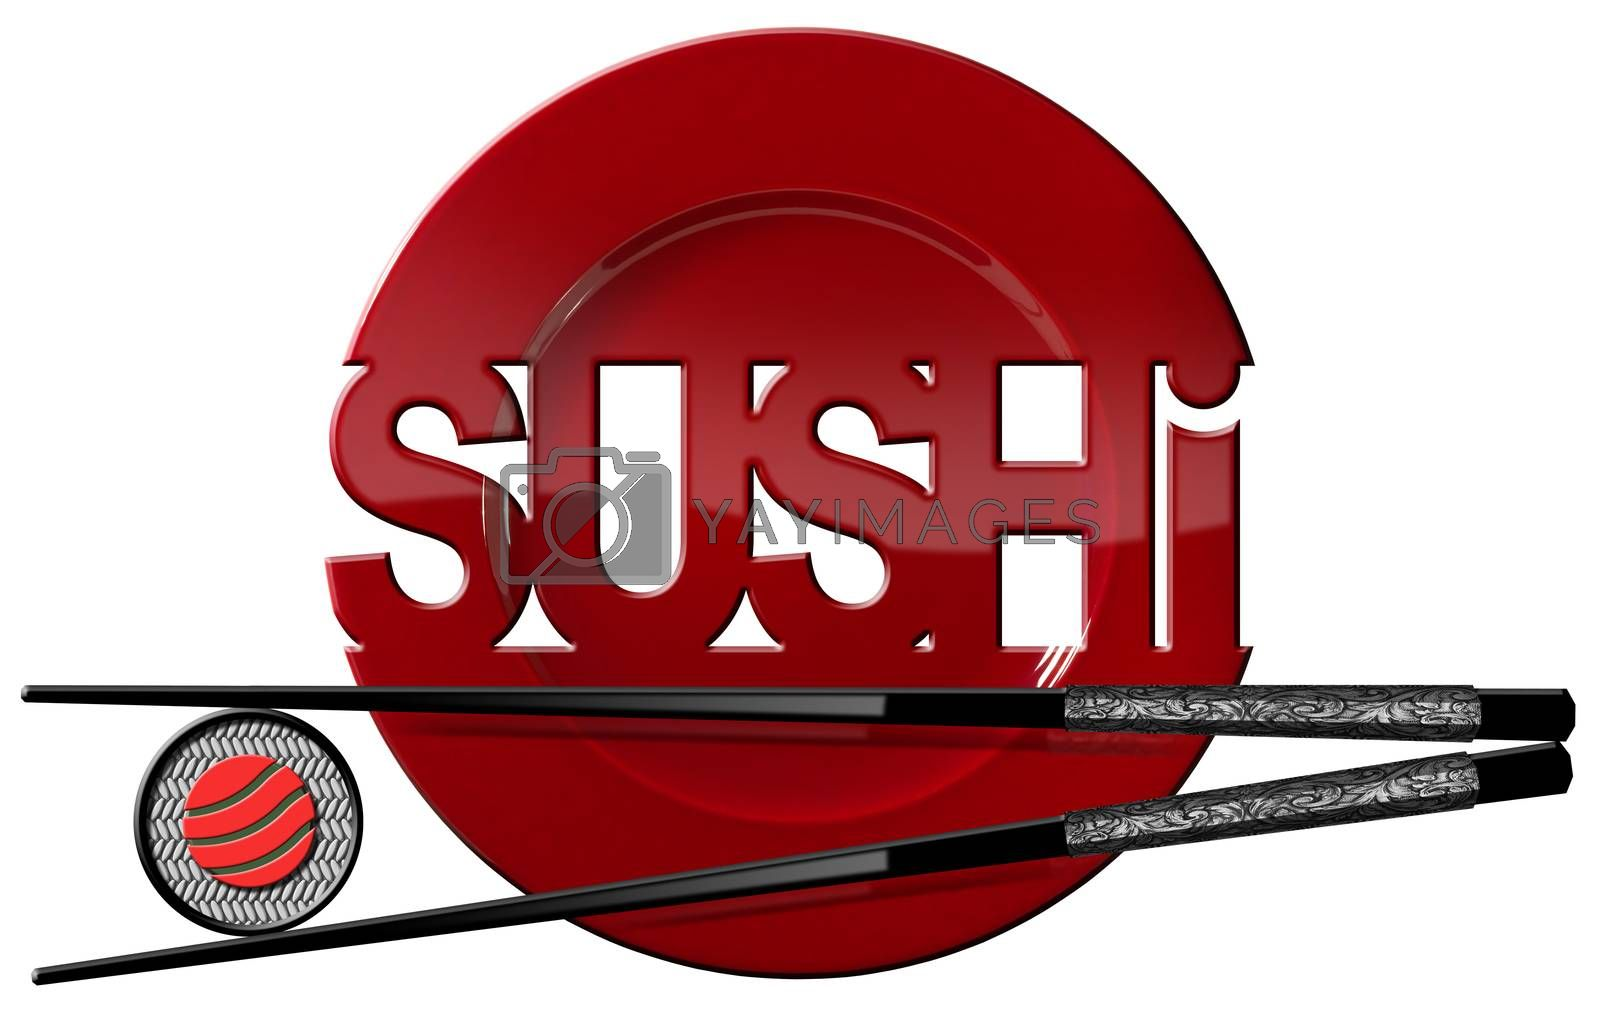 Sushi symbol with red plate, sushi roll, black and silver chopsticks and text Sushi. Isolated on white background